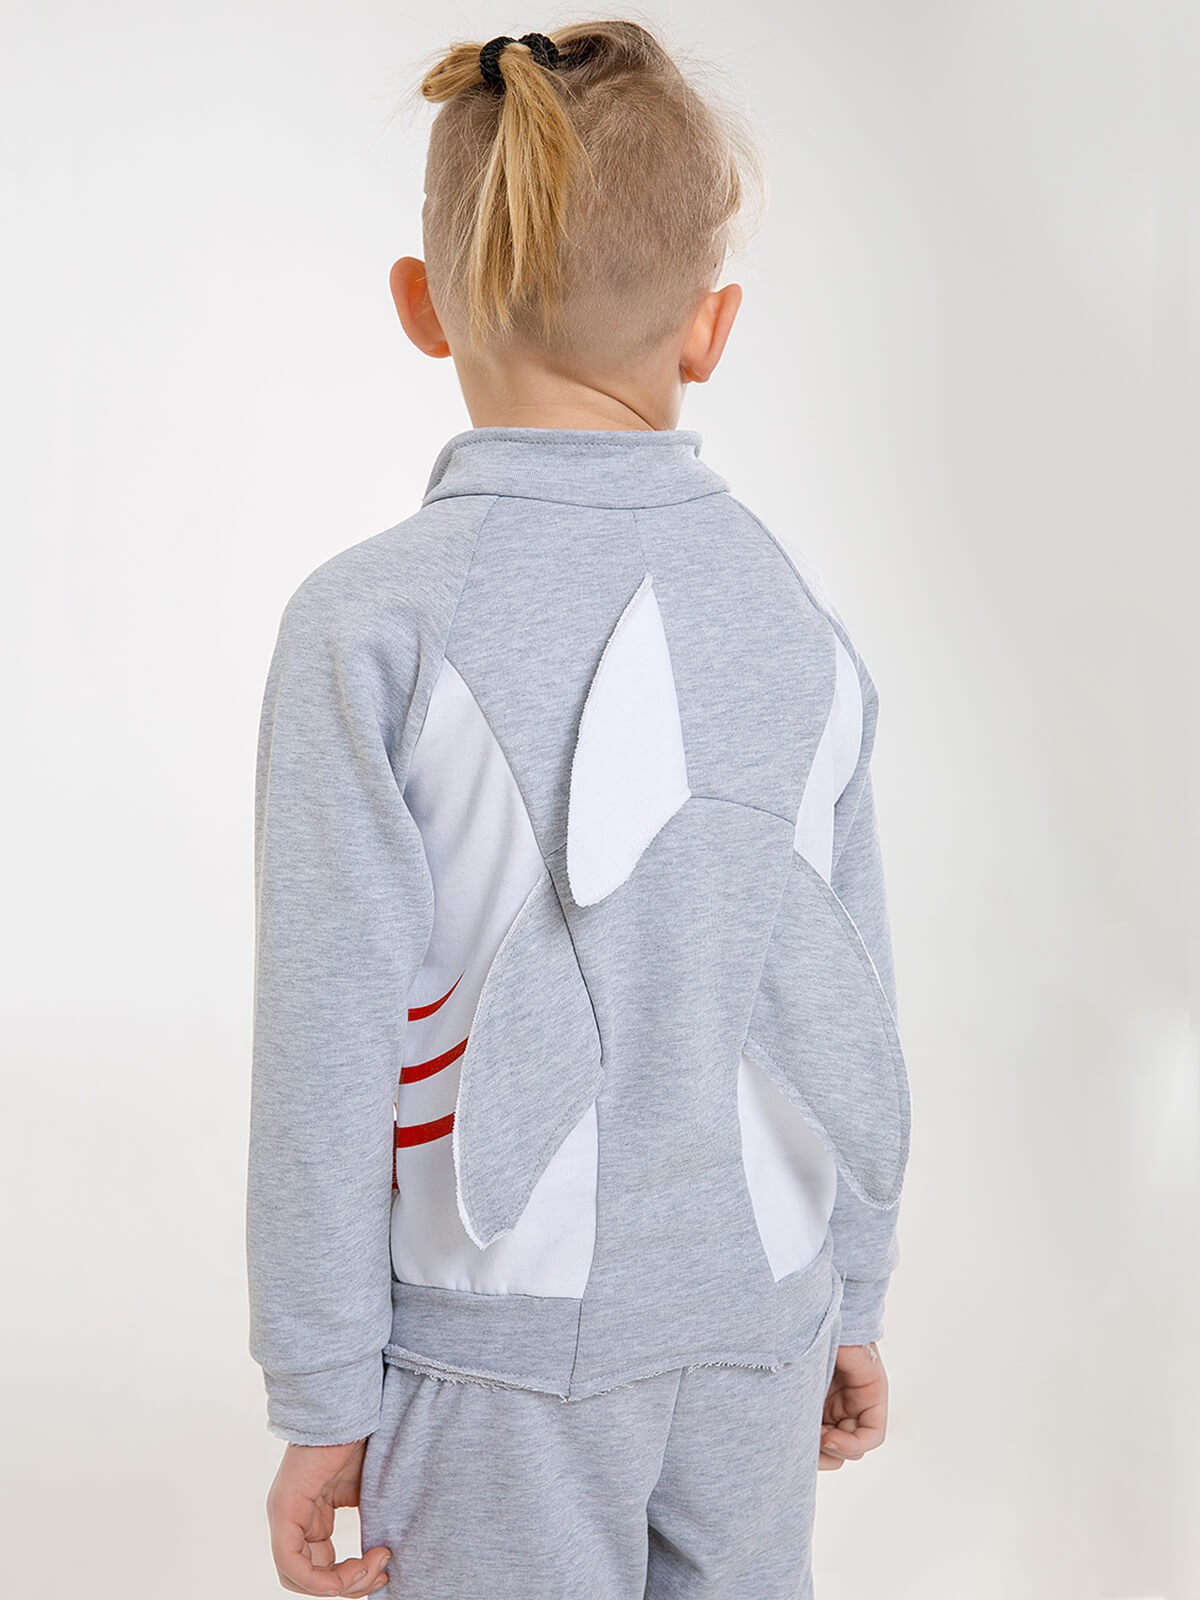 Kids Sport Suit Shark. Color gray. 4.